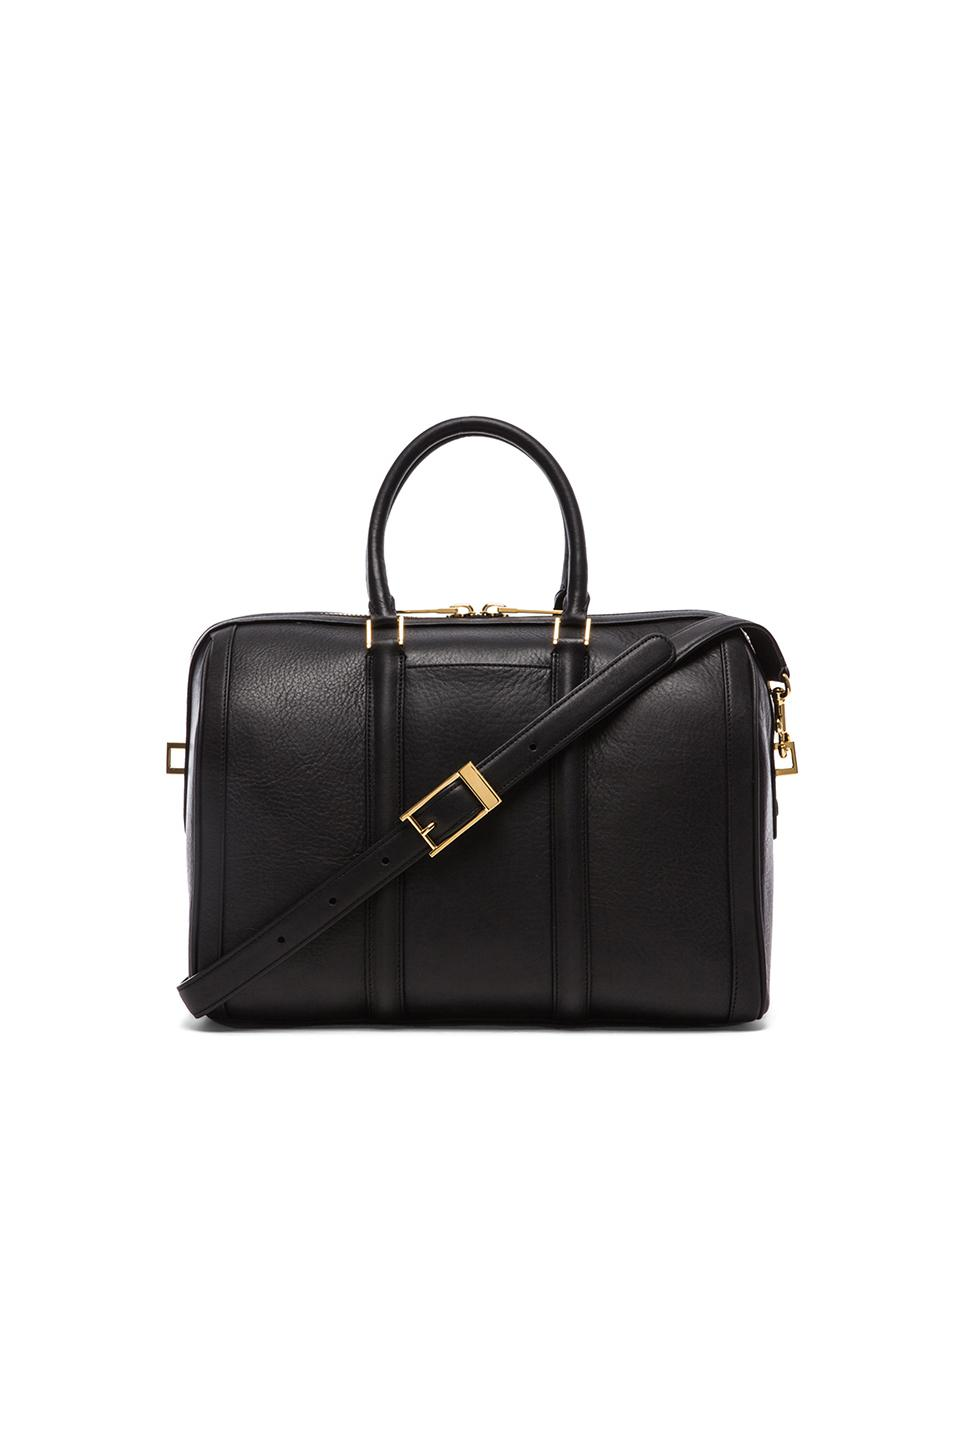 A.L.C. Lucas Satchel in Black